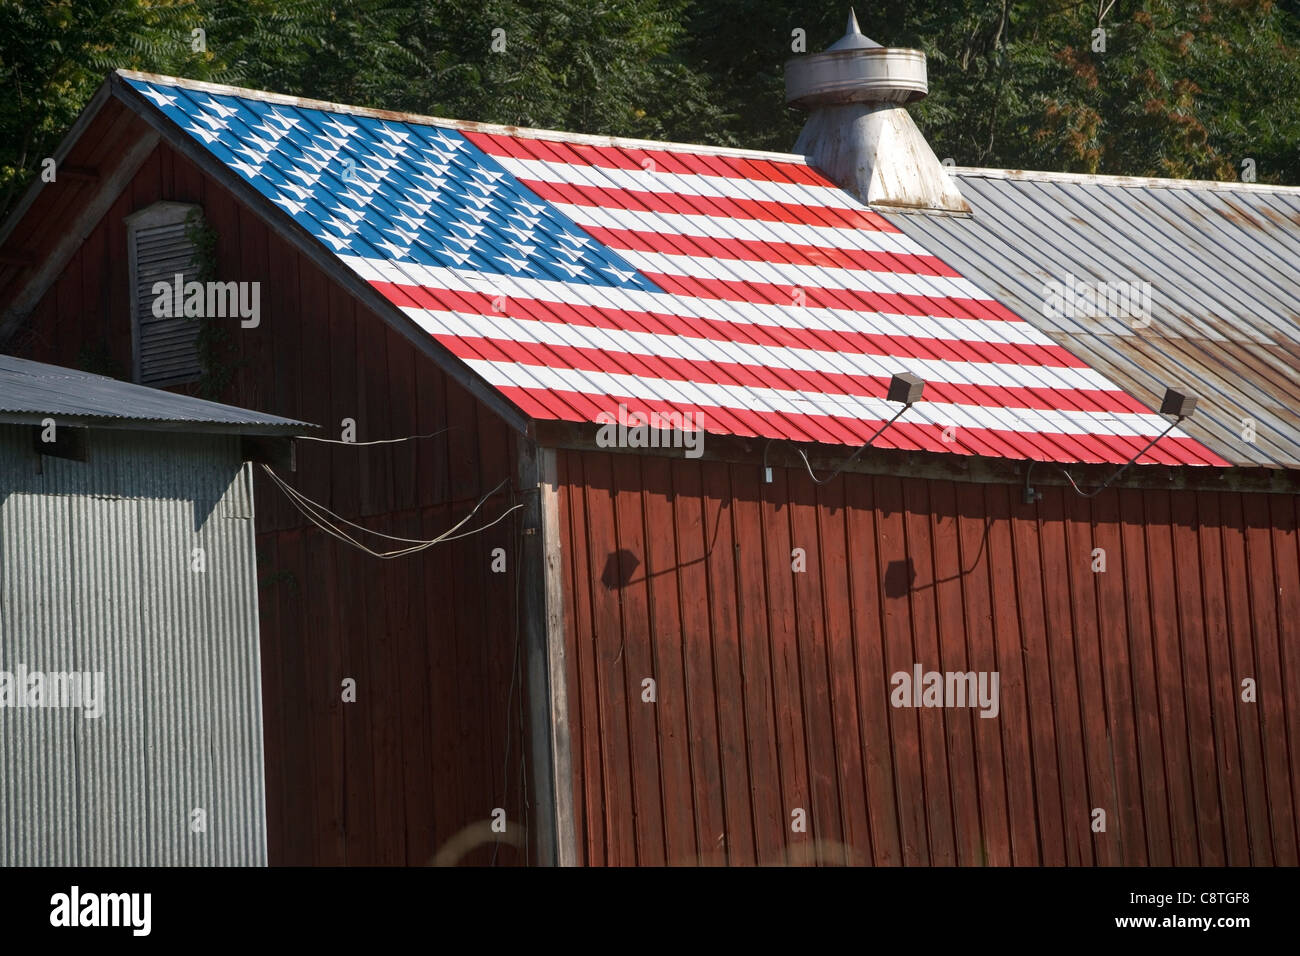 USA, New York State, Chester, Barn with American Flag on roof - Stock Image